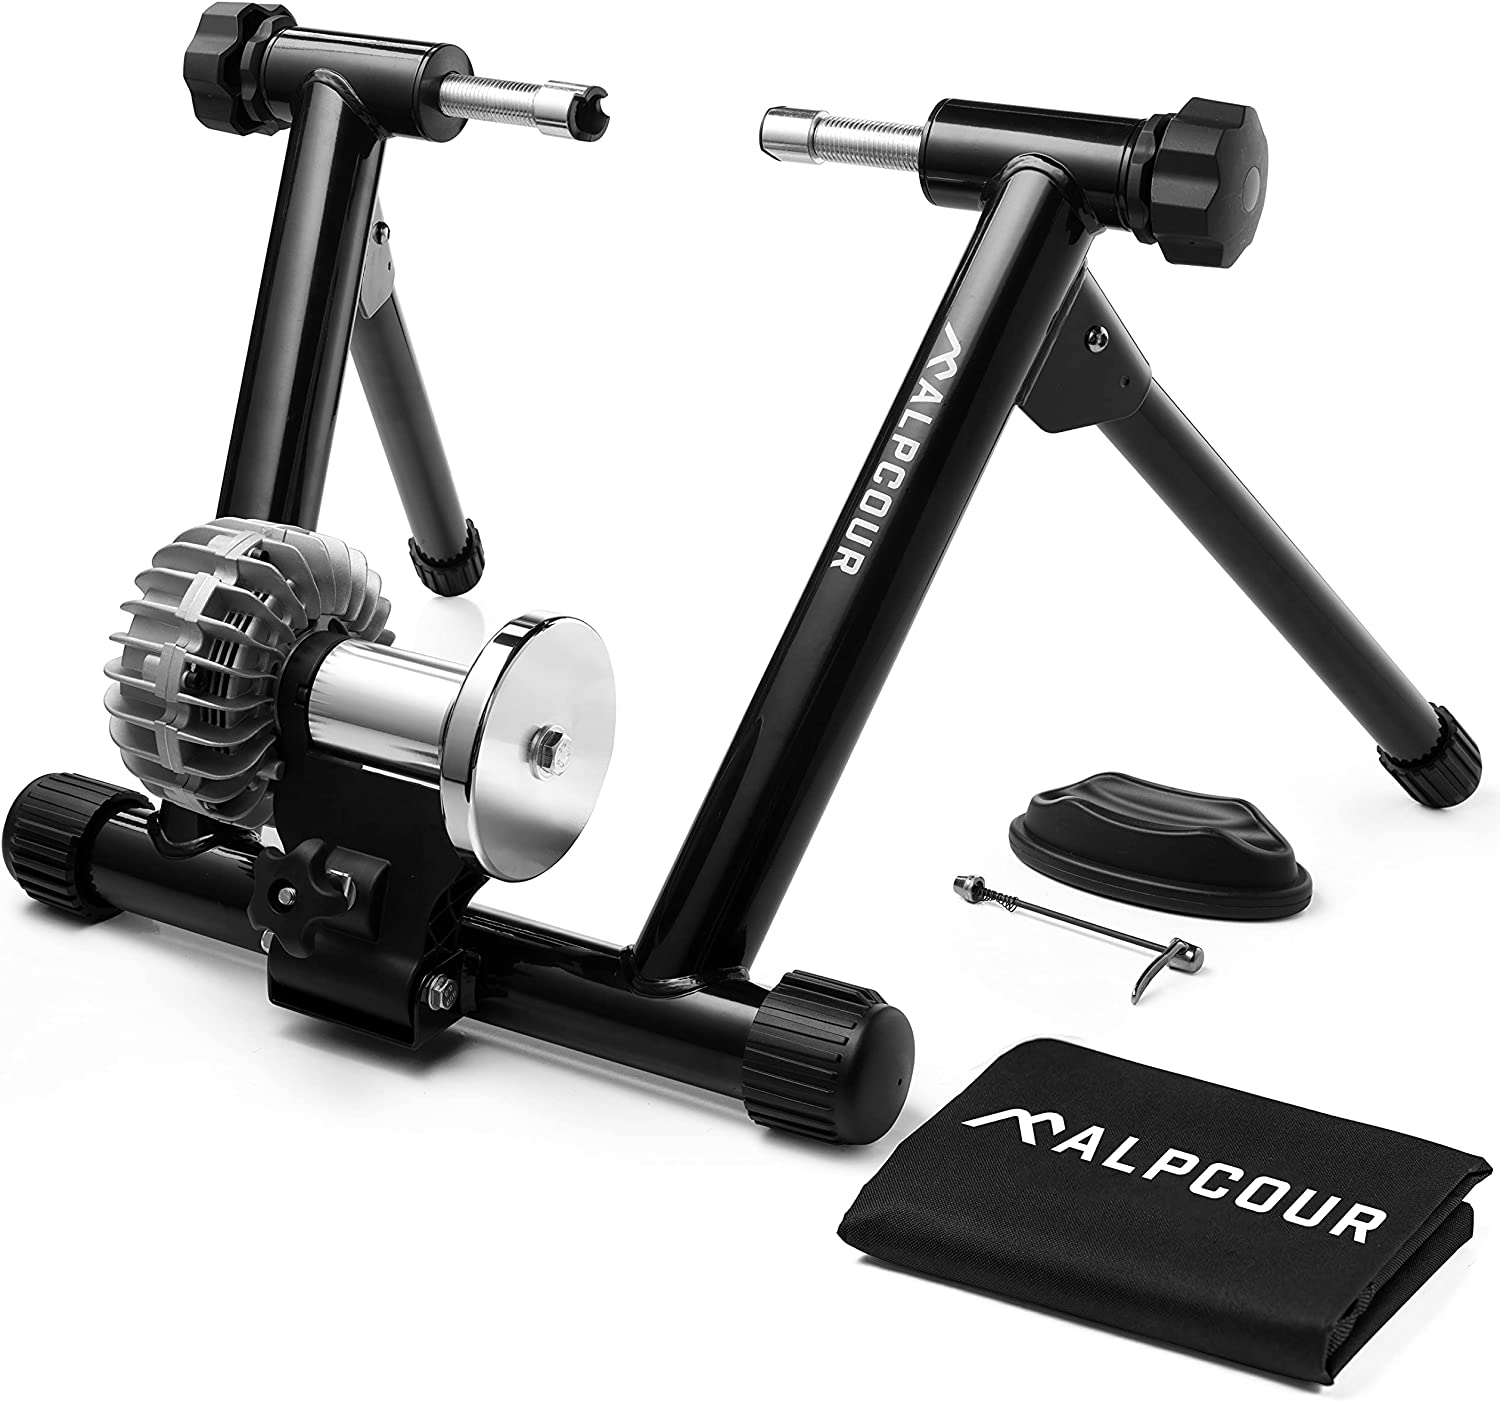 Alpcour Fluid discount Bike Trainer Stand Stainless – Tucson Mall Portable Steel